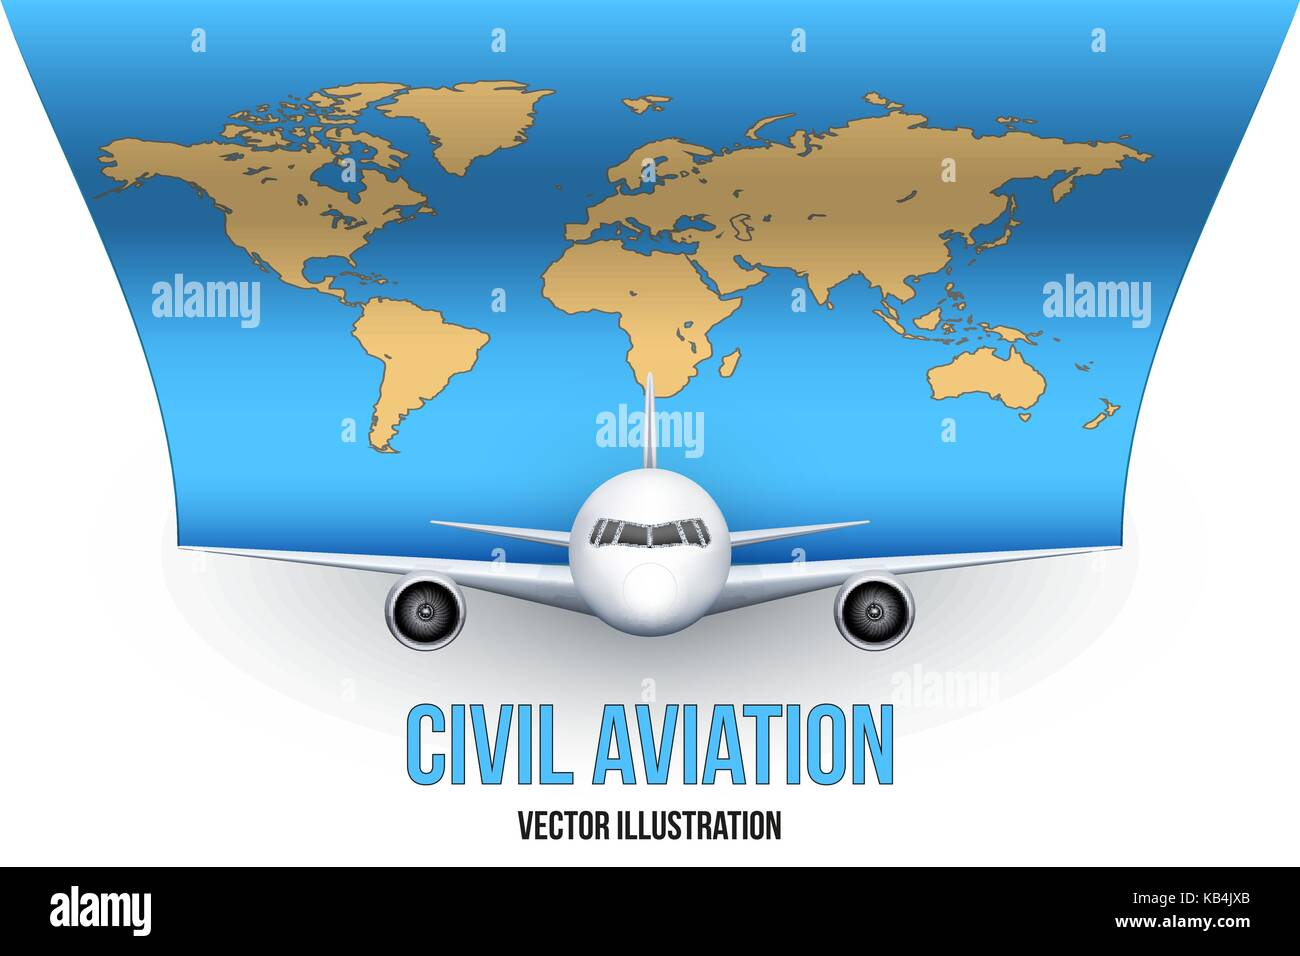 Civil Aircraft with world map - Stock Image